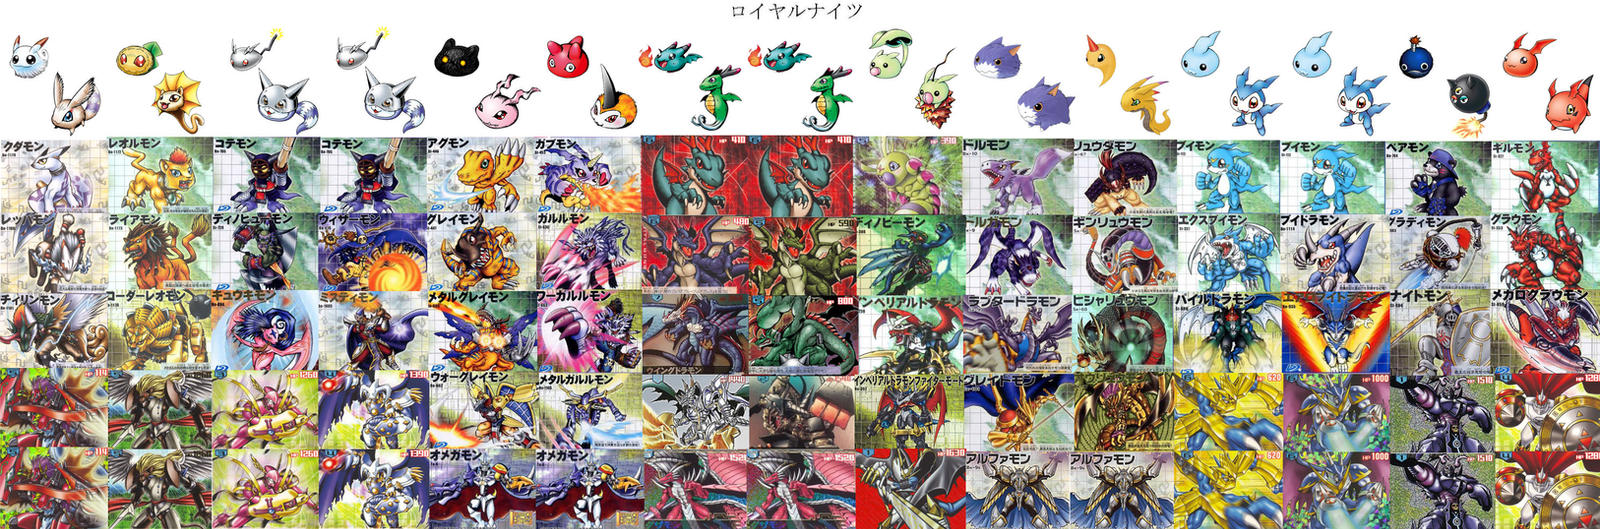 Digimon Adventure 03 - Possible Digivolutions by ChipmunkRaccoonOz ...